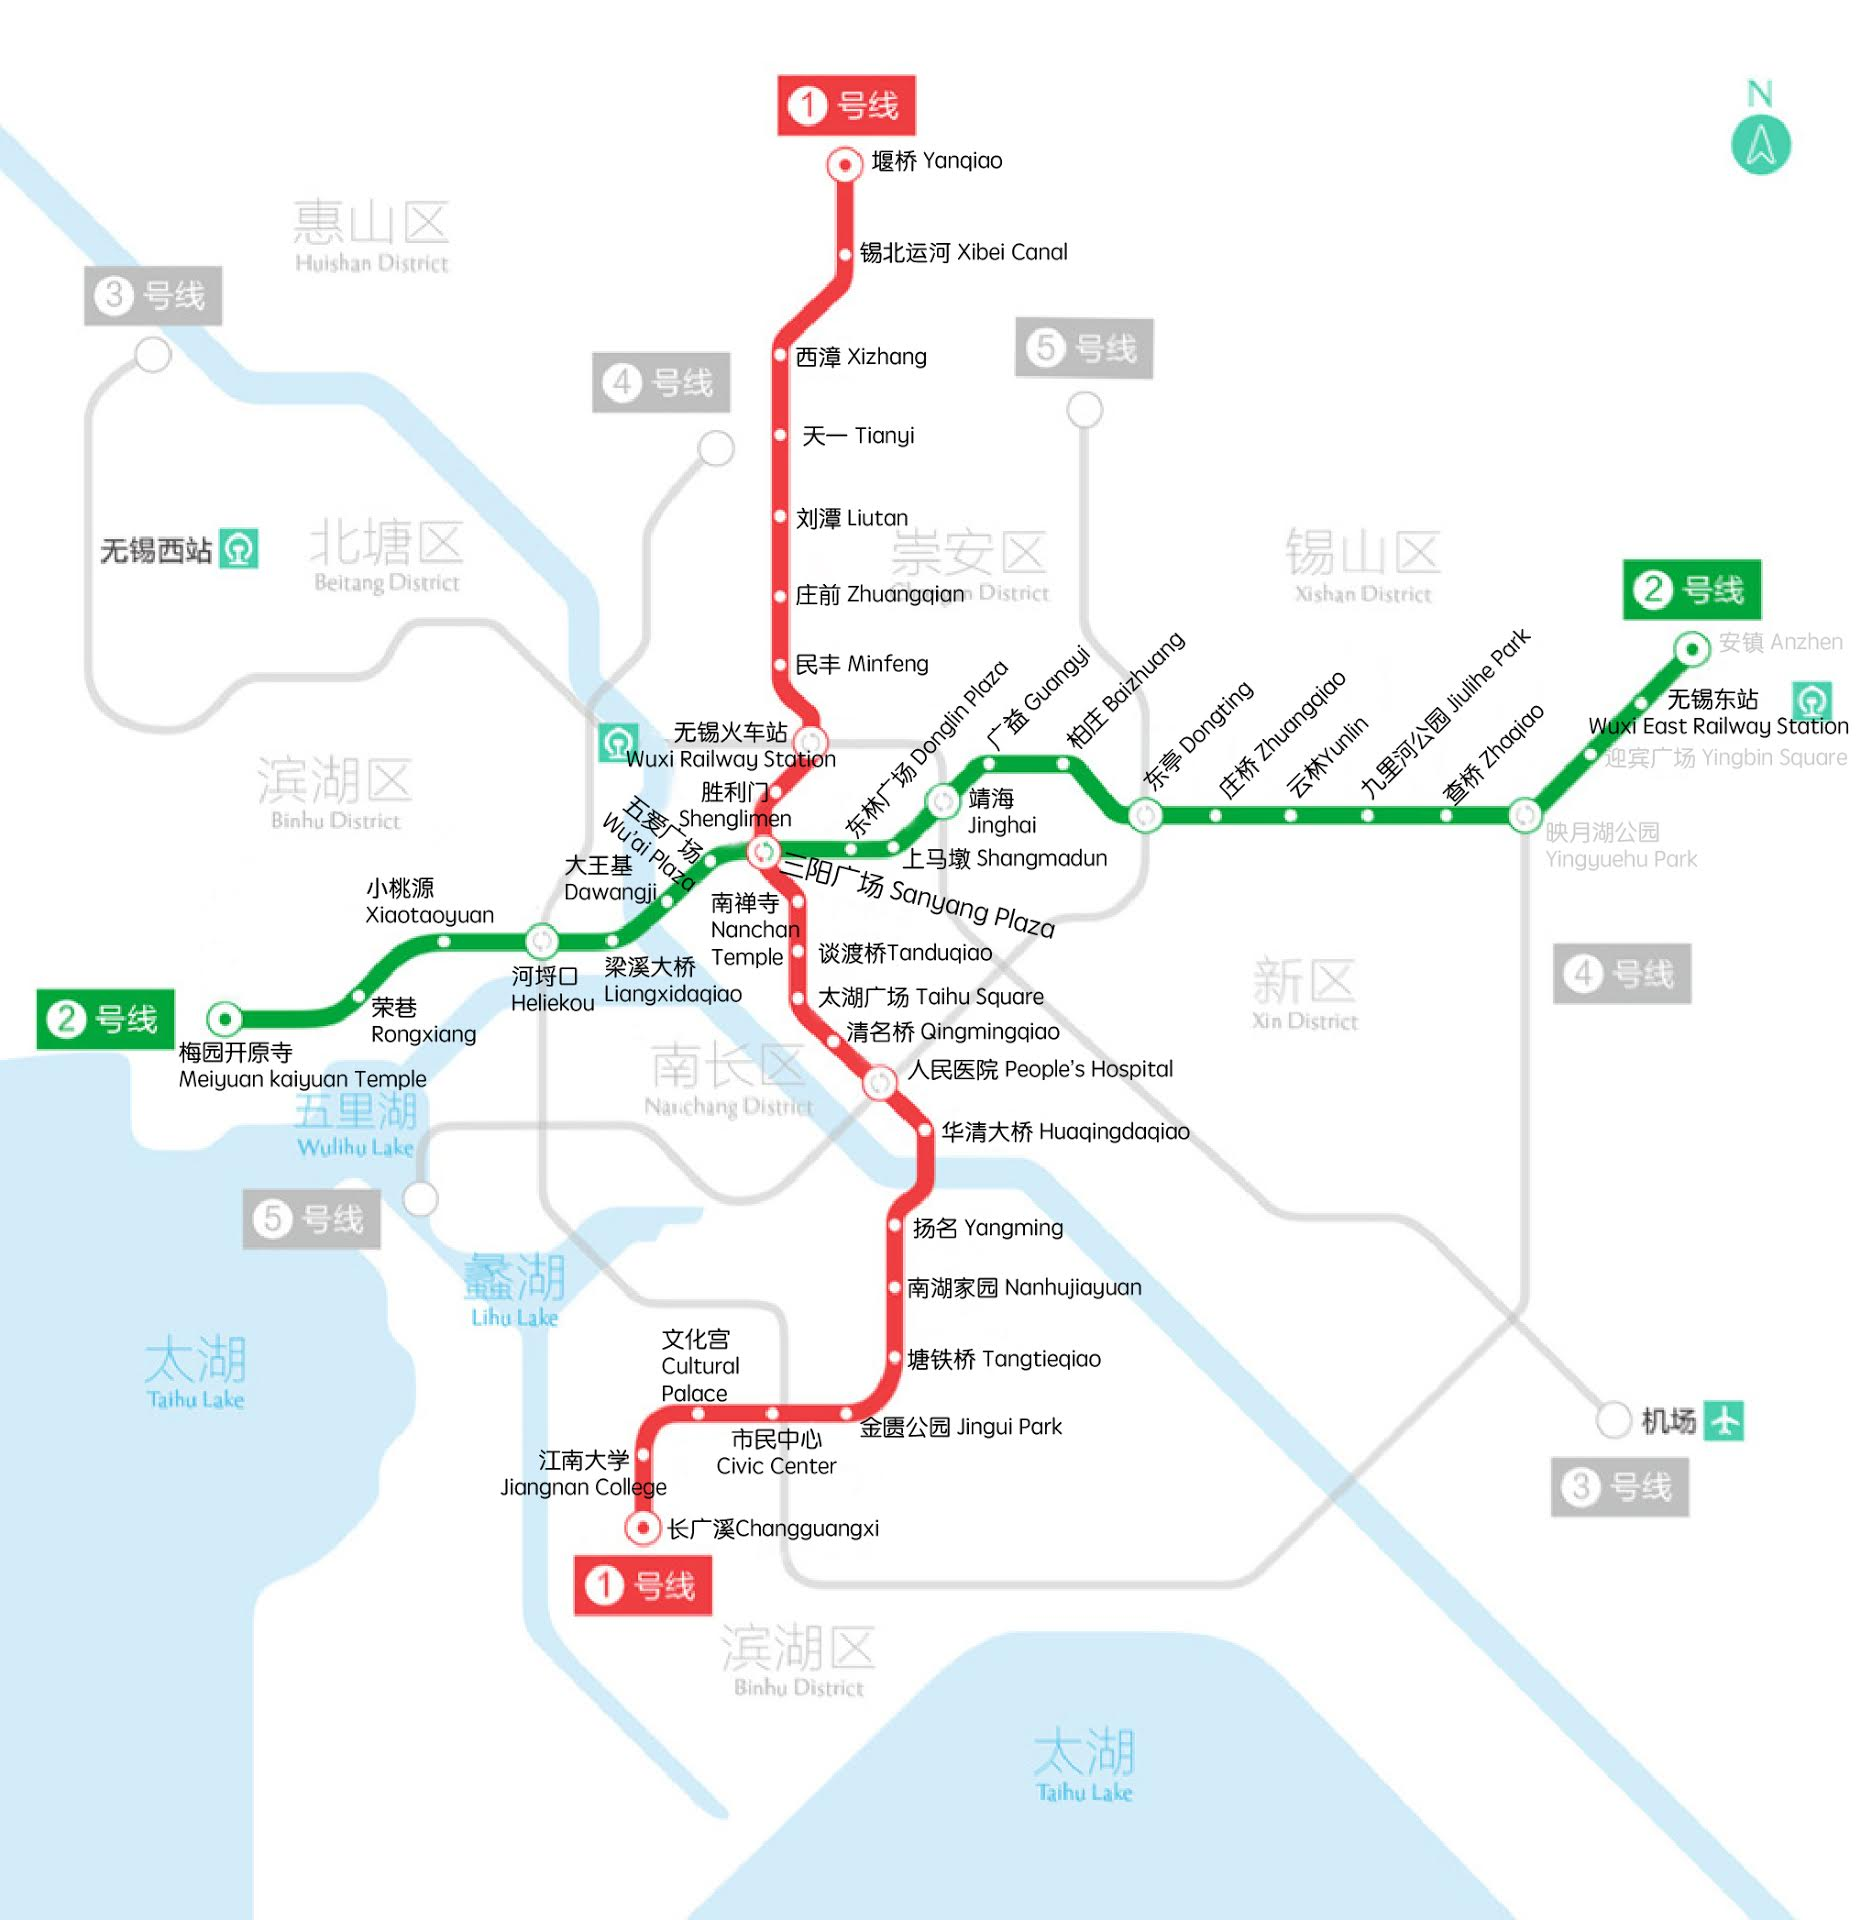 Subway Lines 1 and 2 revised